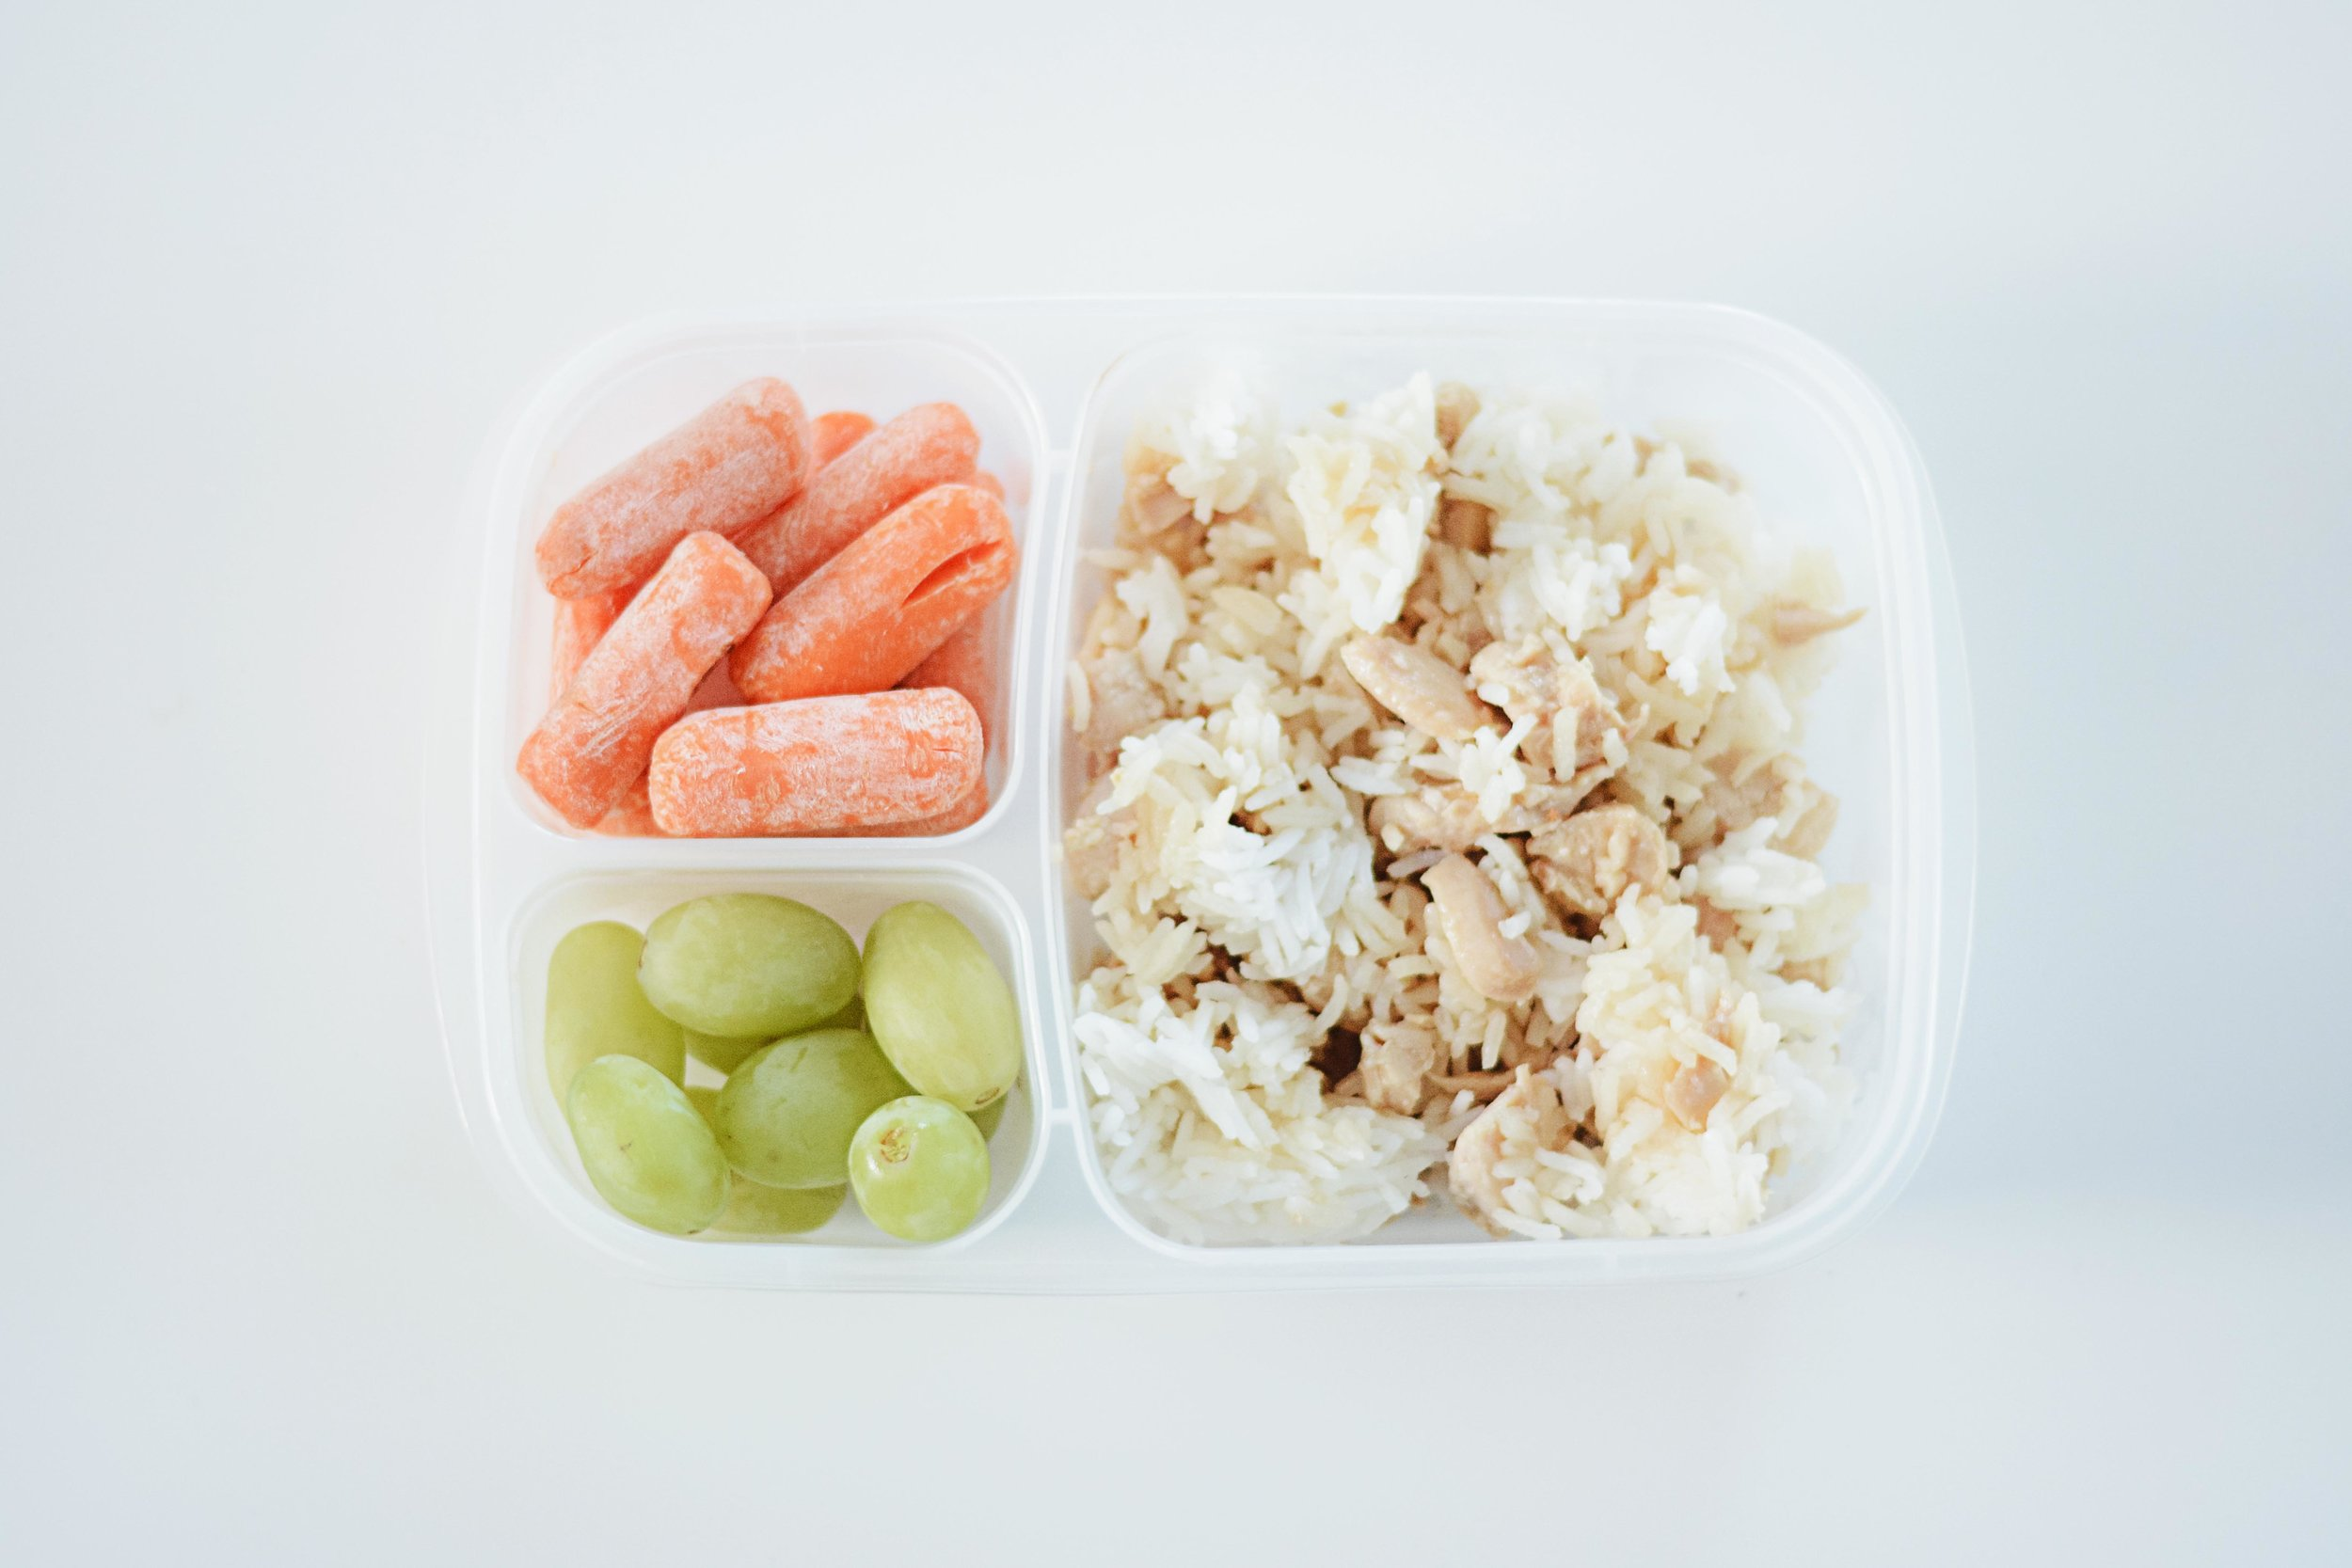 lunches9.jpg